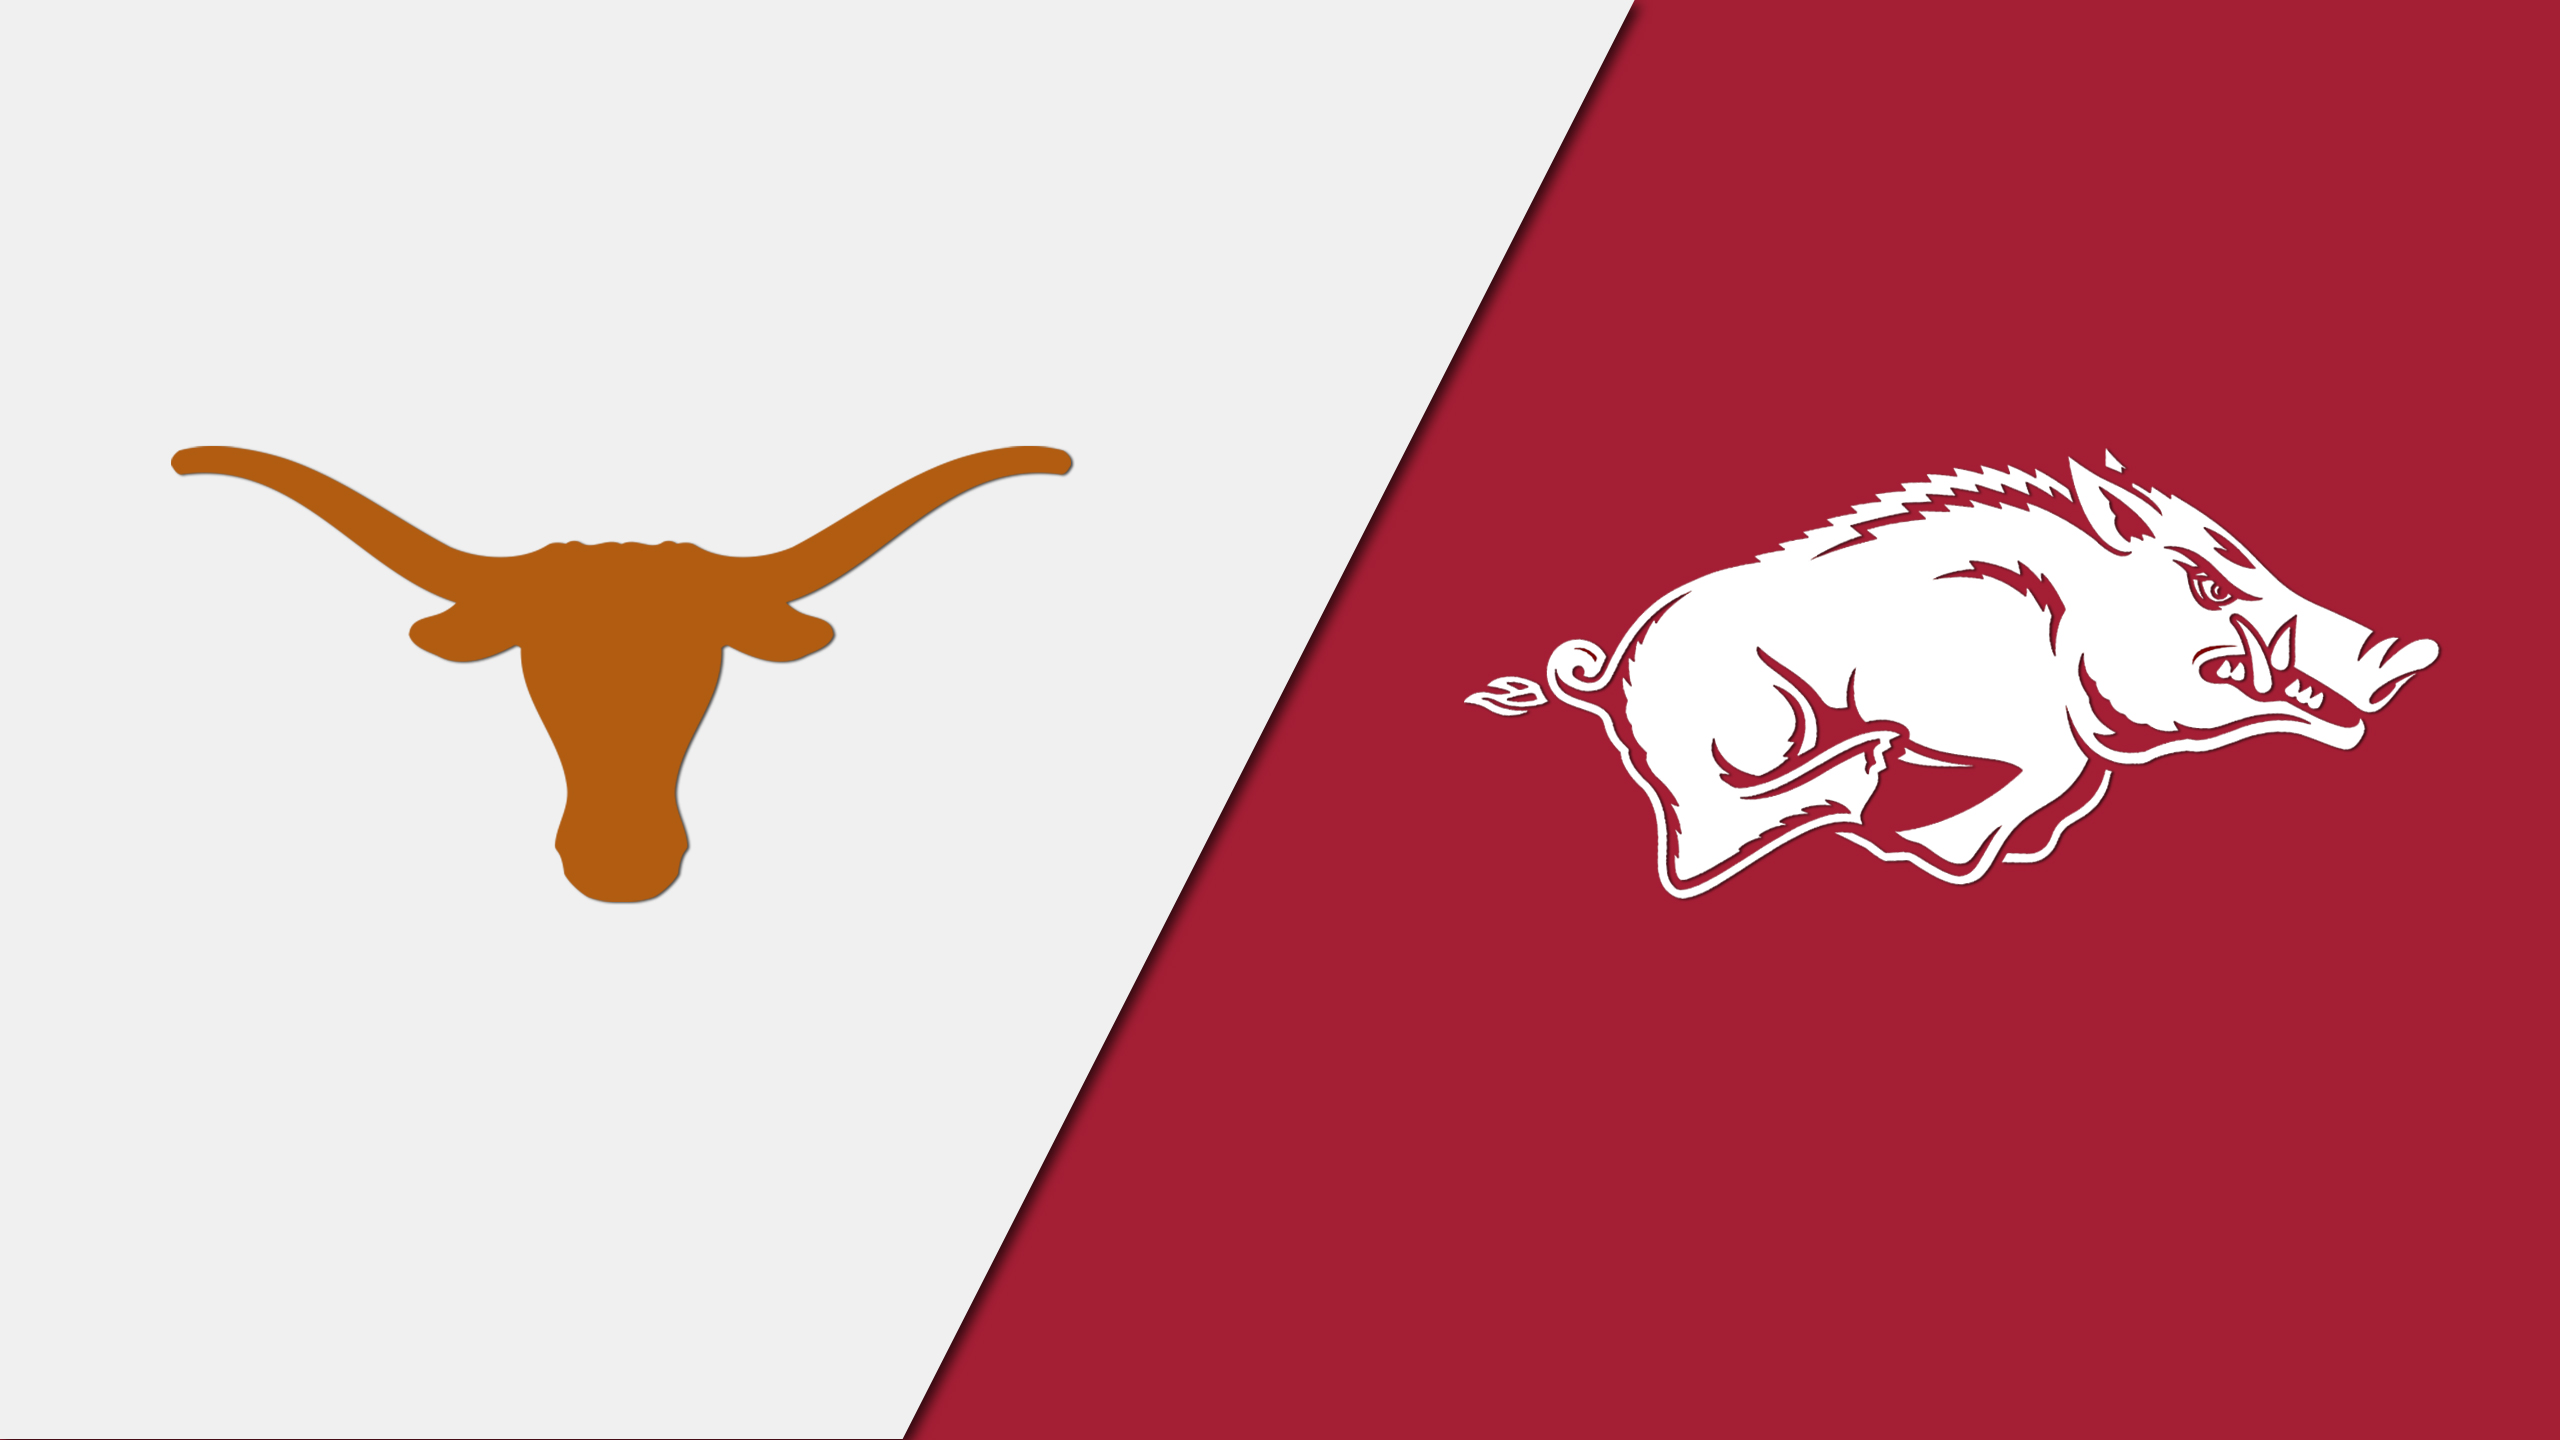 Texas Longhorns vs. Arkansas Razorbacks (re-air)